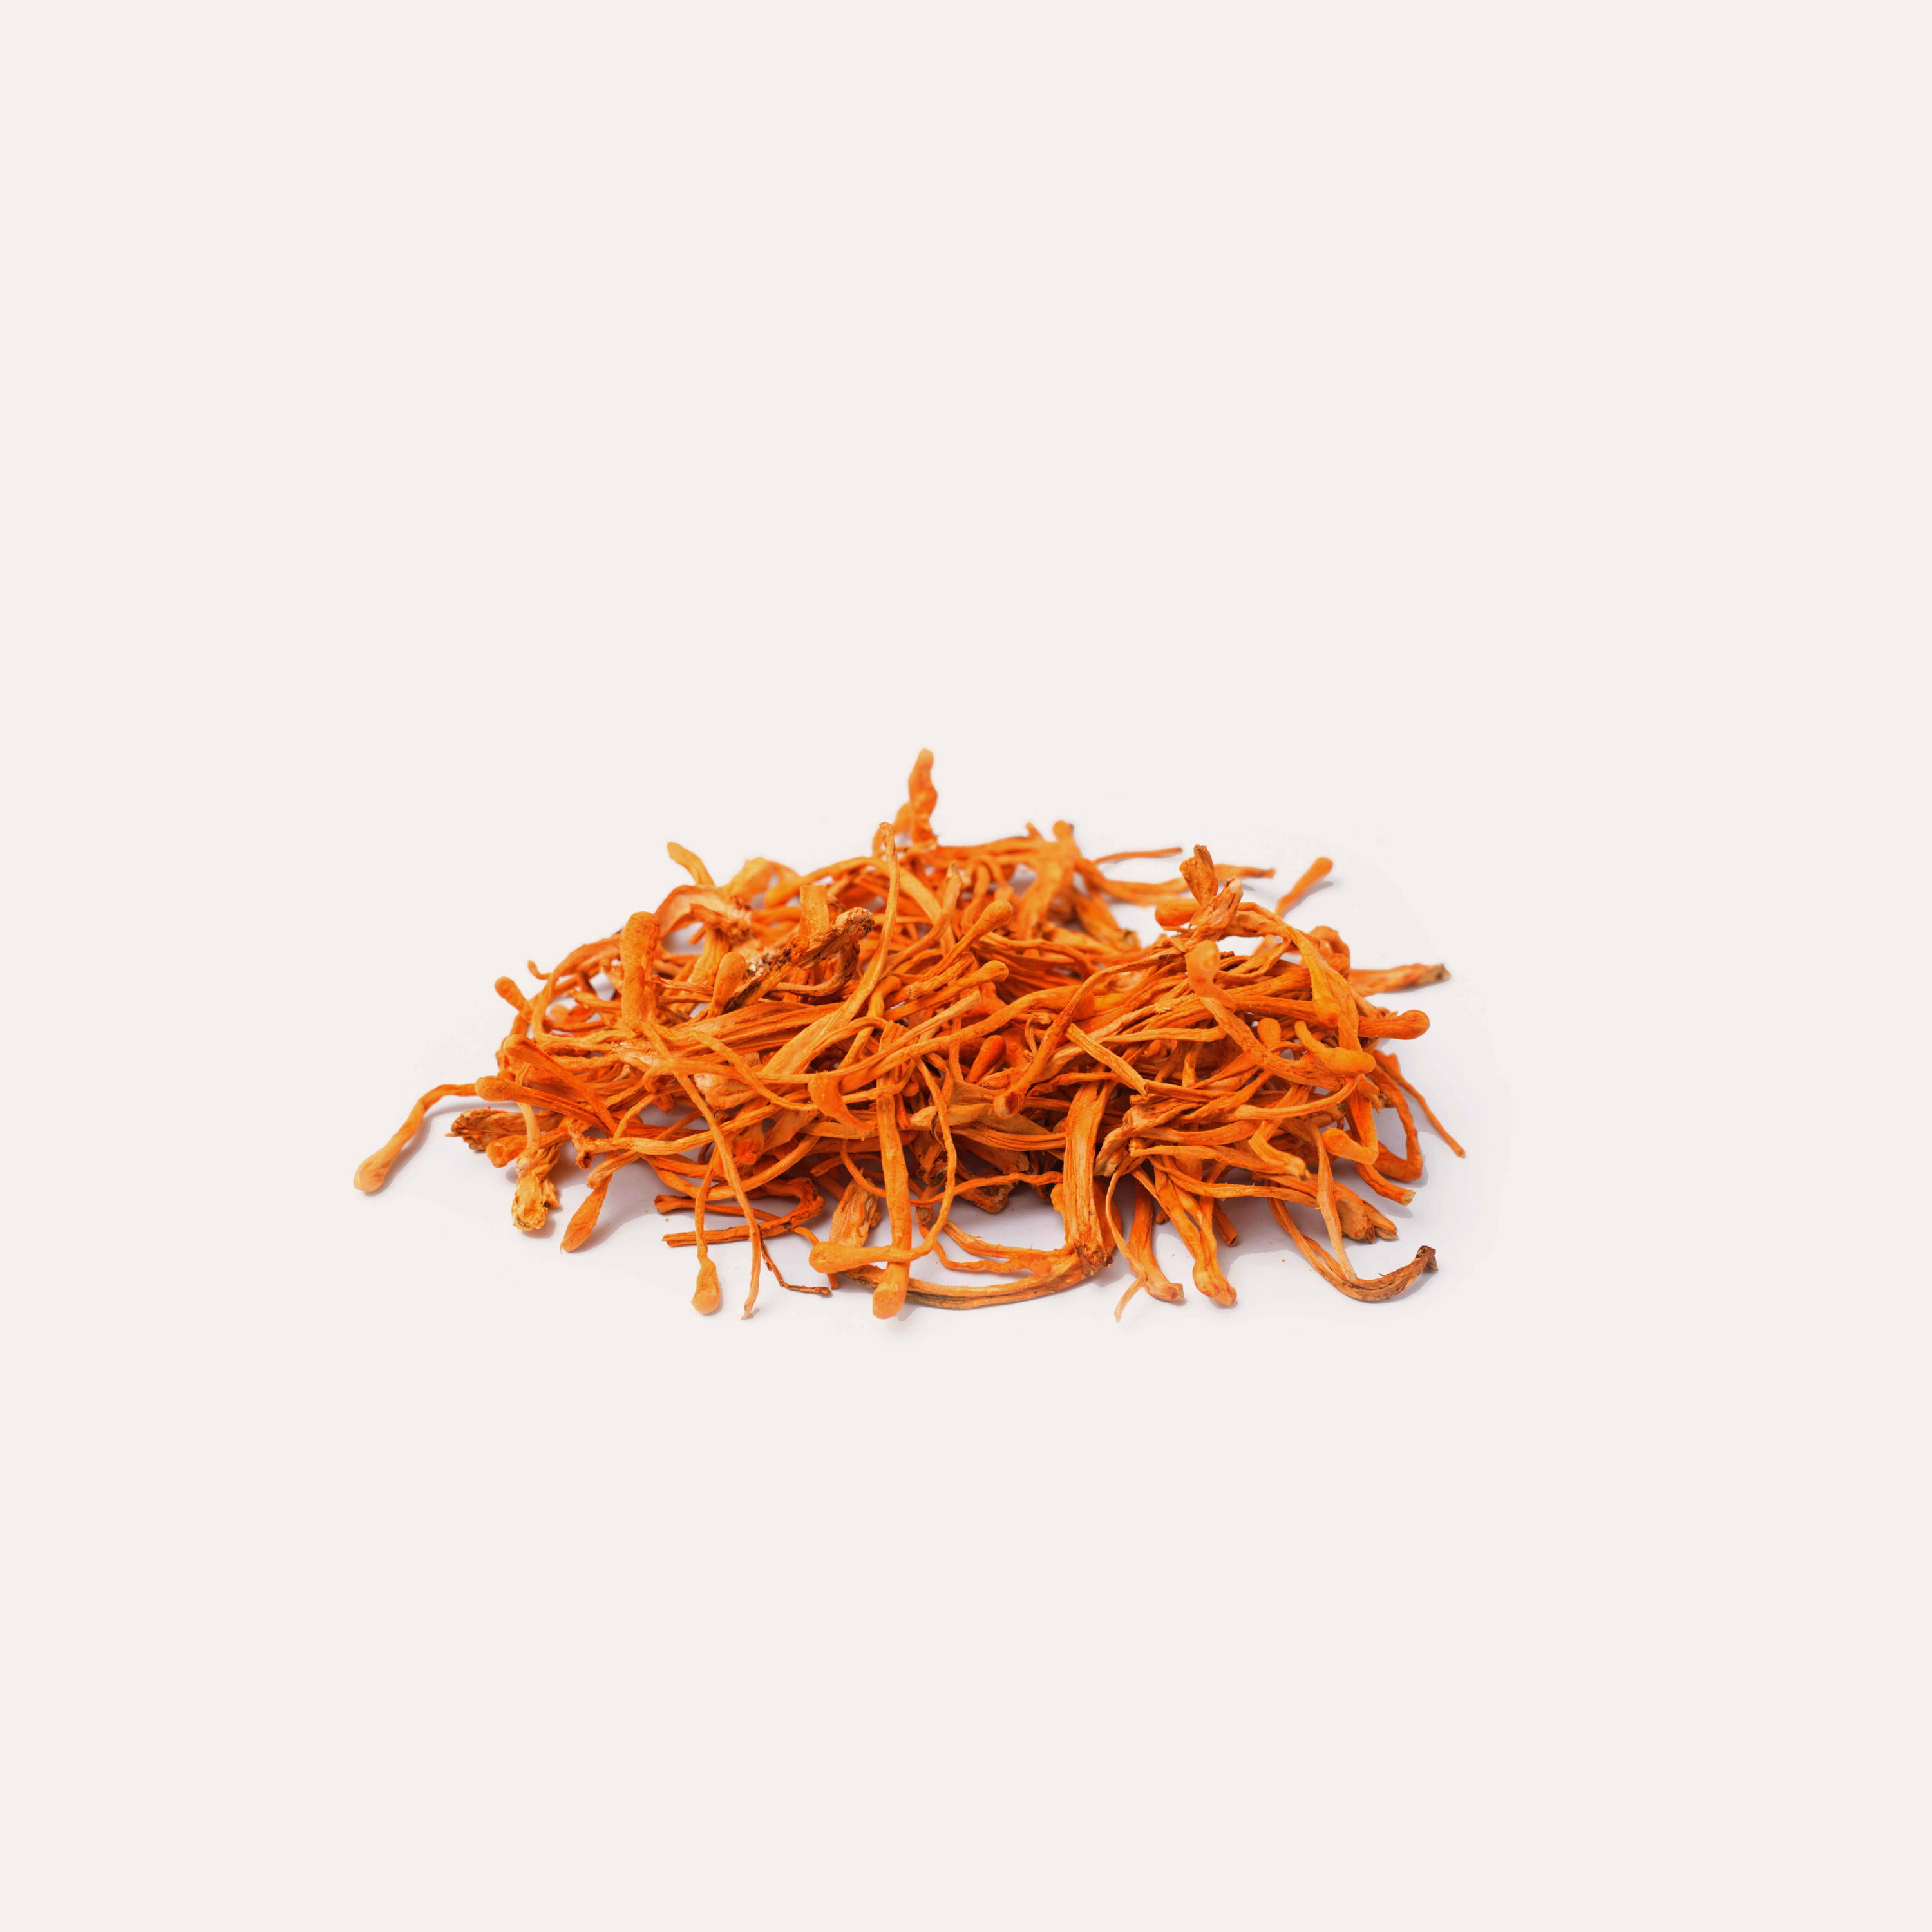 cordyceps mushroom on solid background